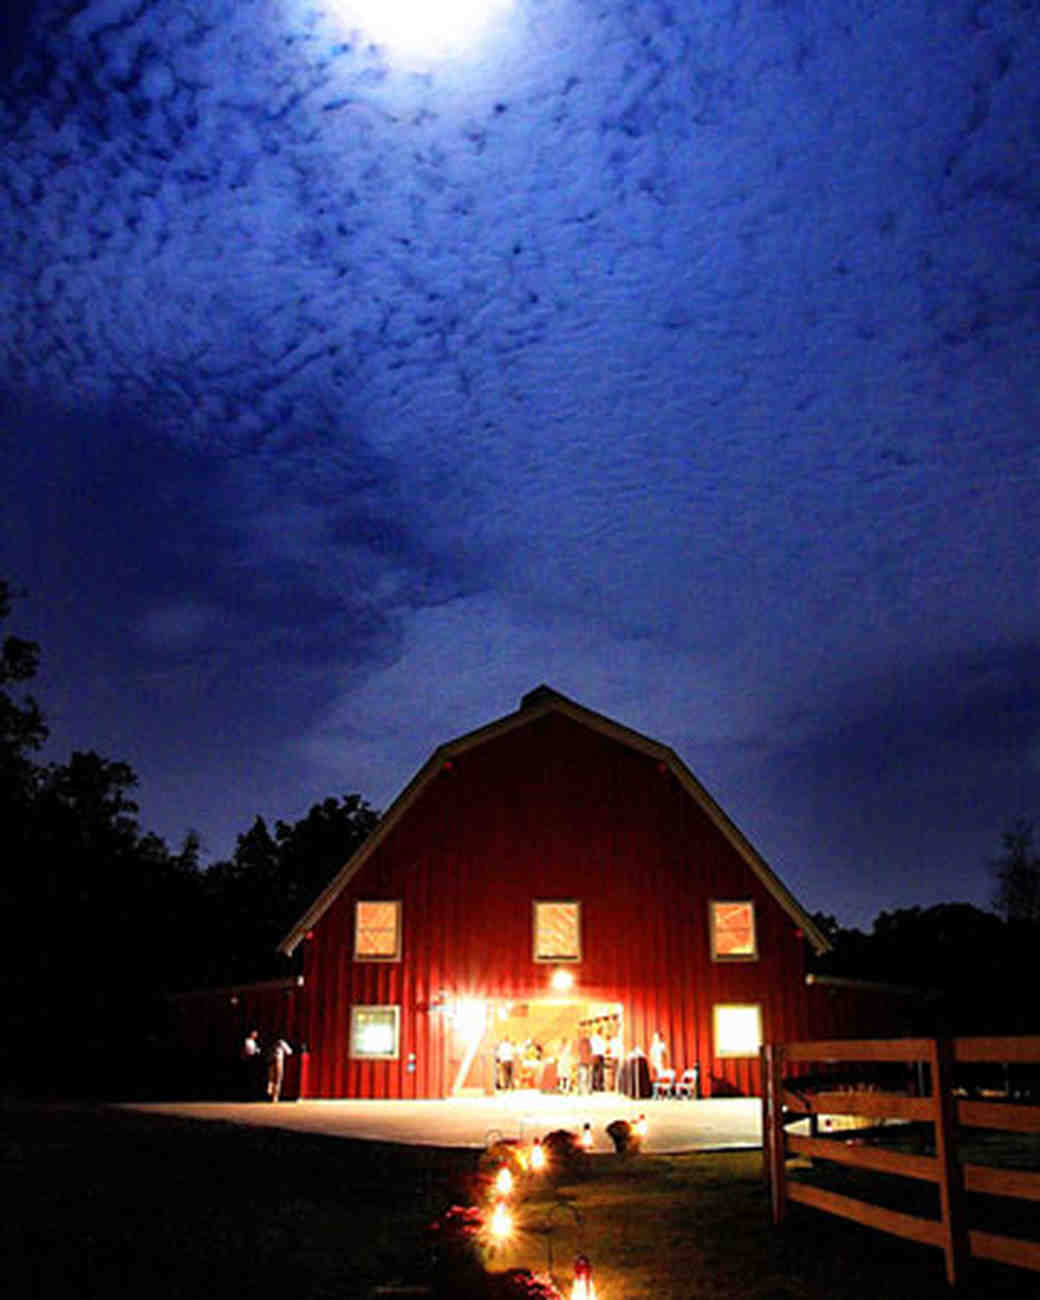 msw_sip10_arkansas_pratt_place_barn.jpg